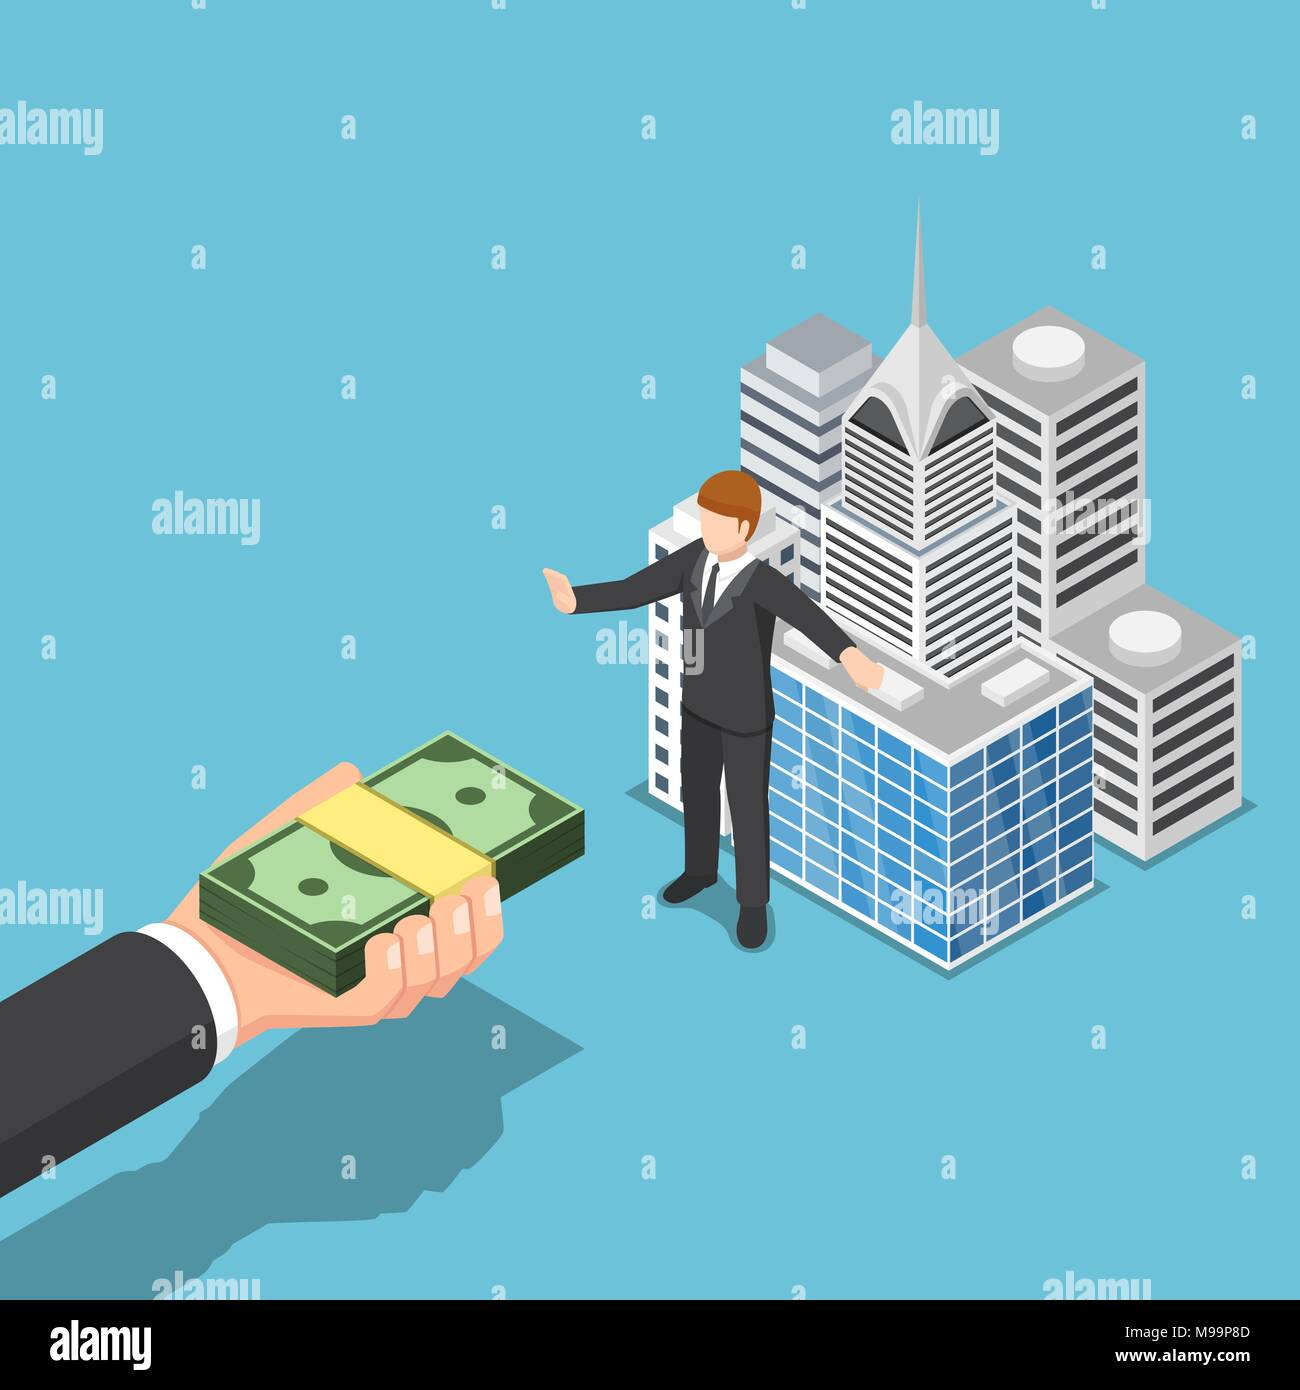 Flat 3d isometric businessman don't sell his business building. Business asset and real estate concept. - Stock Vector